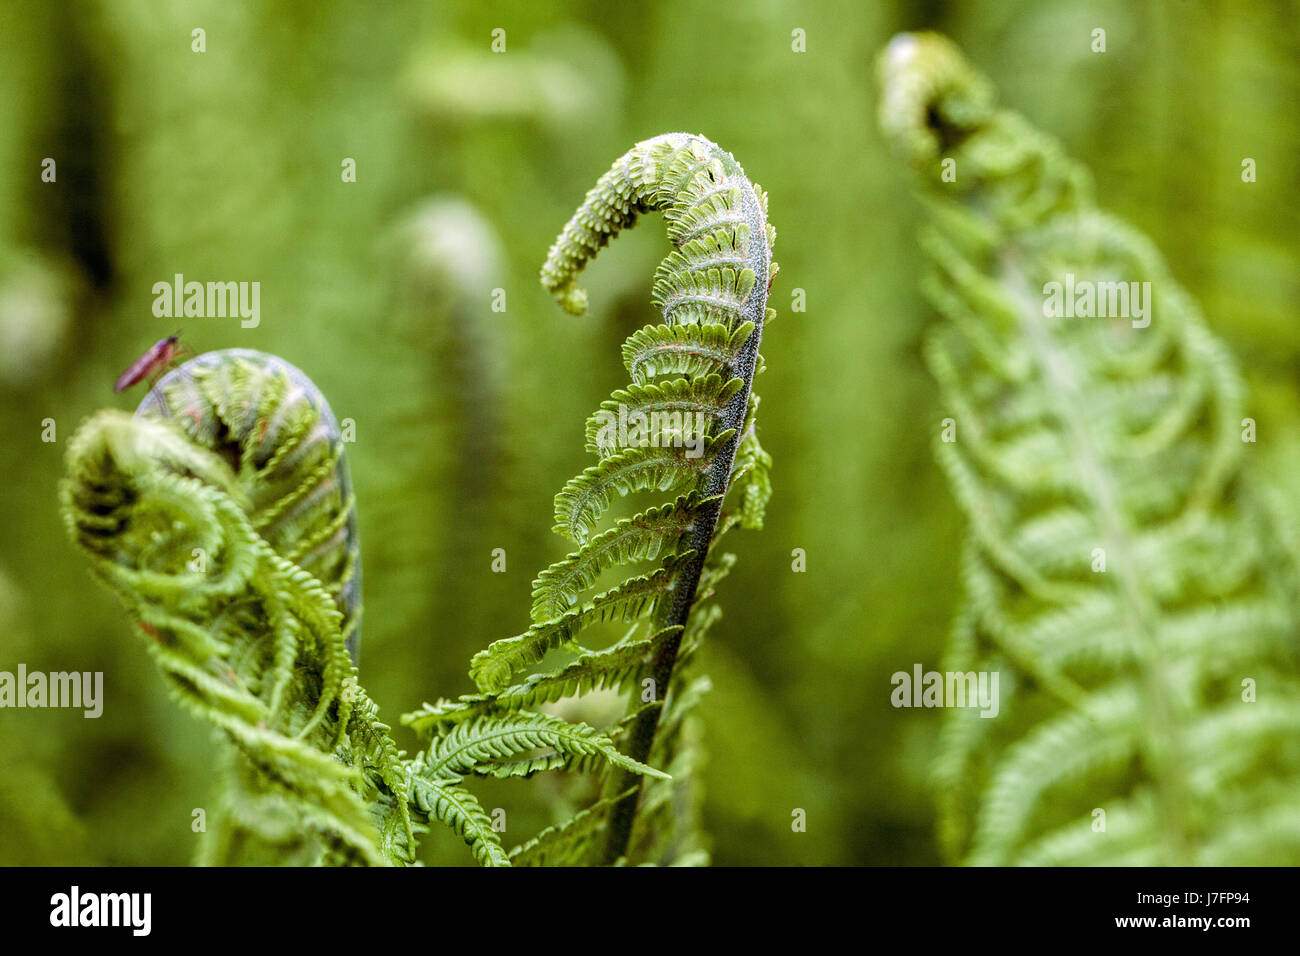 Ostrich fern Matteuccia struthiopteris fresh leaves - Stock Image